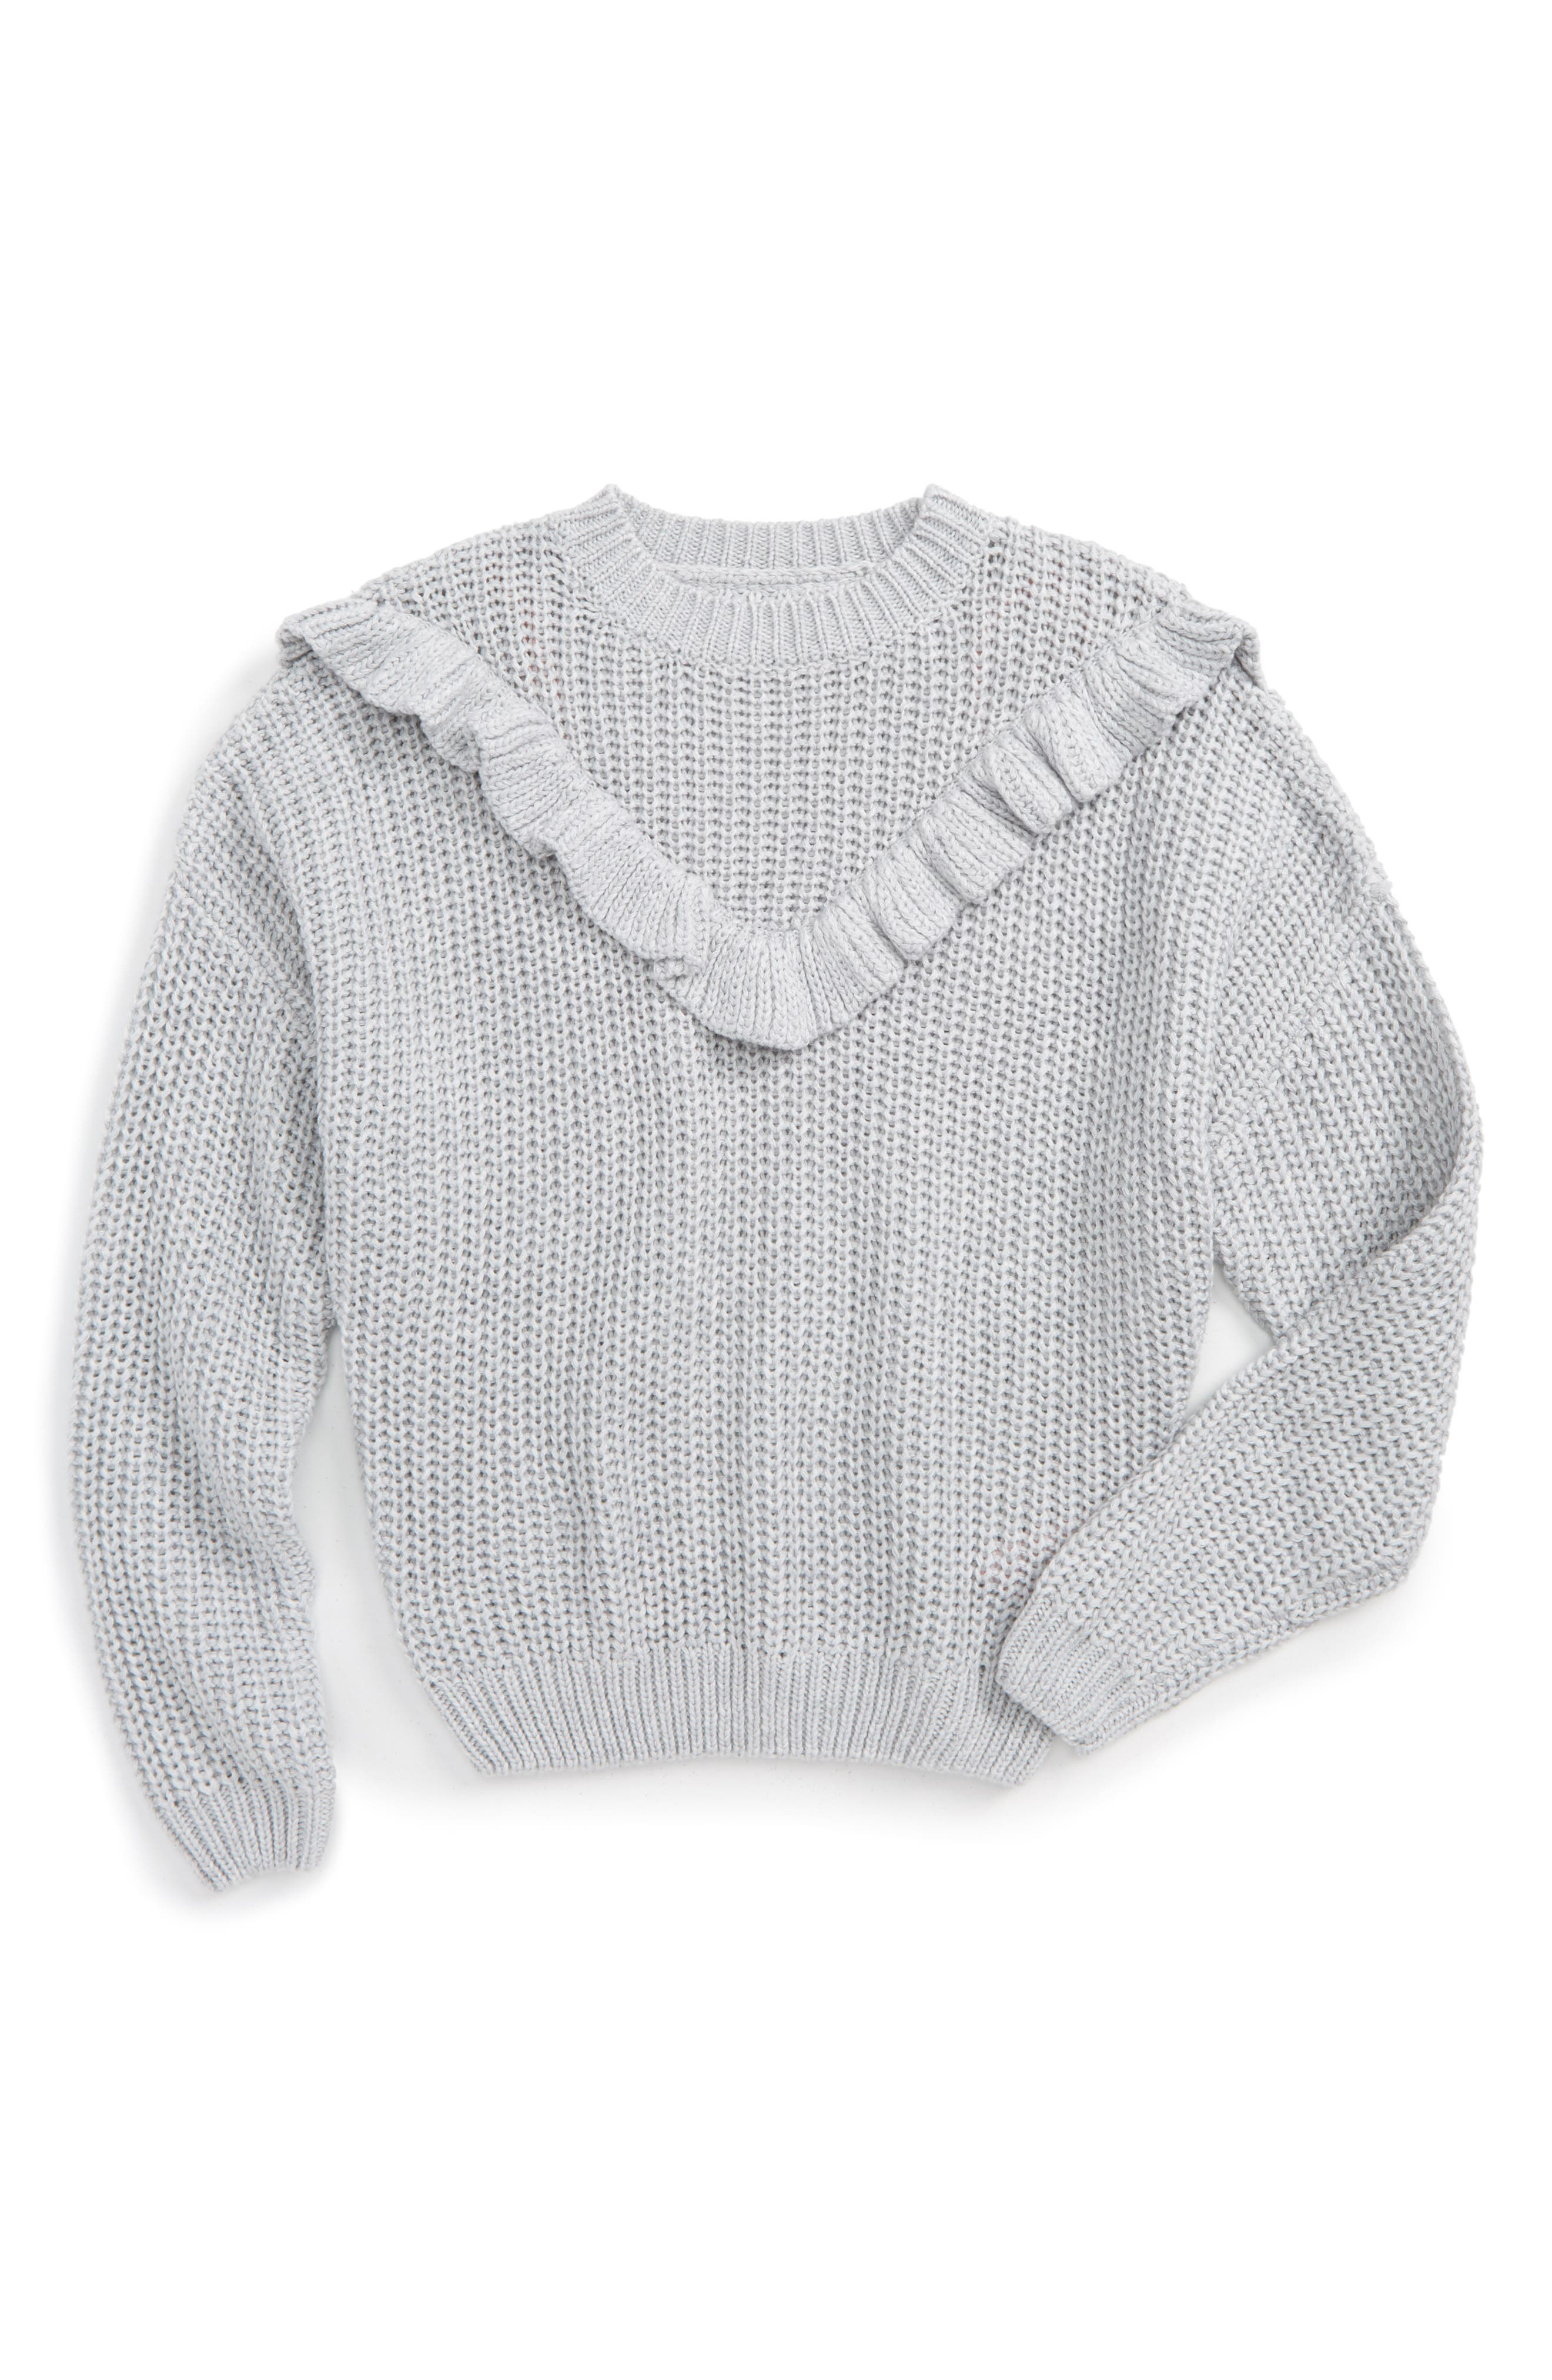 Main Image - BLANCNYC Ruffle Sweater (Big Girls)